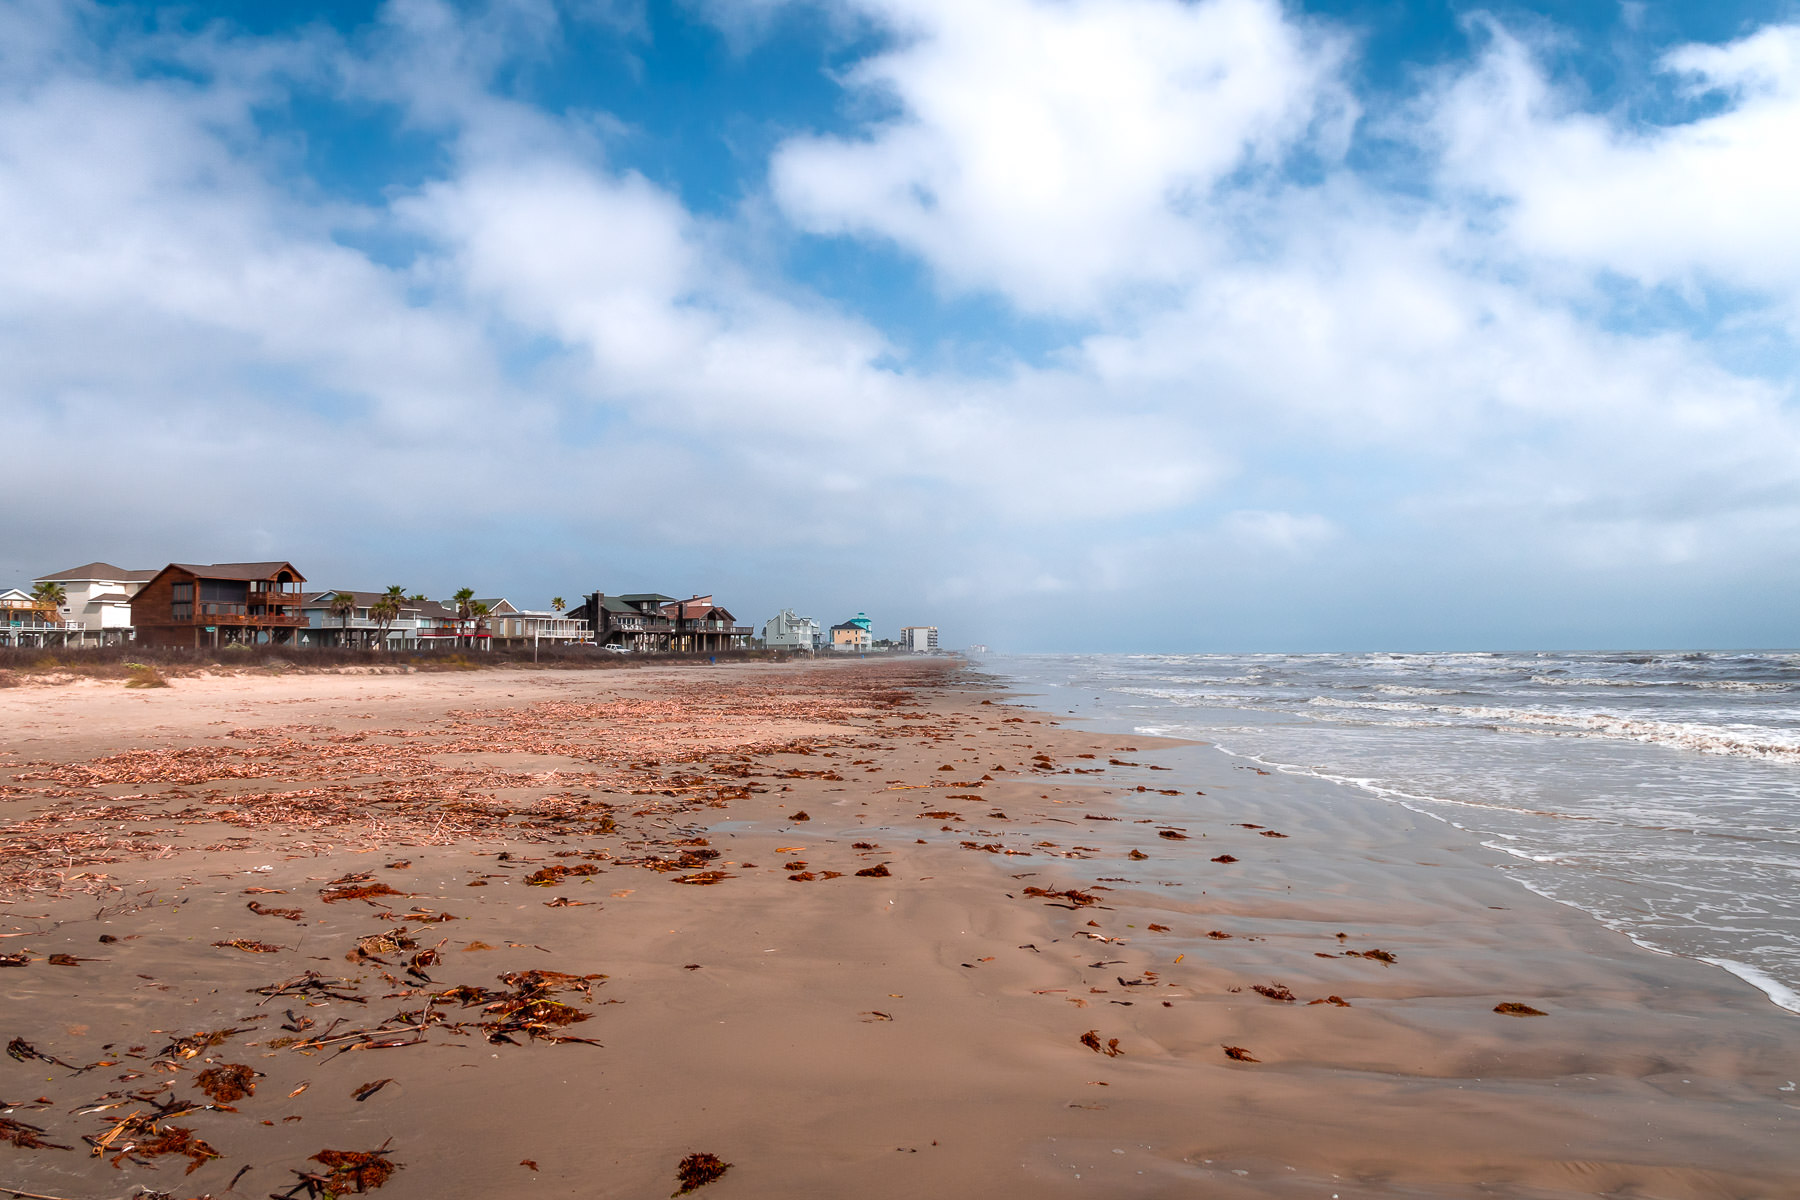 Clouds roll over a seaweed-covered beach at Galveston, Texas.